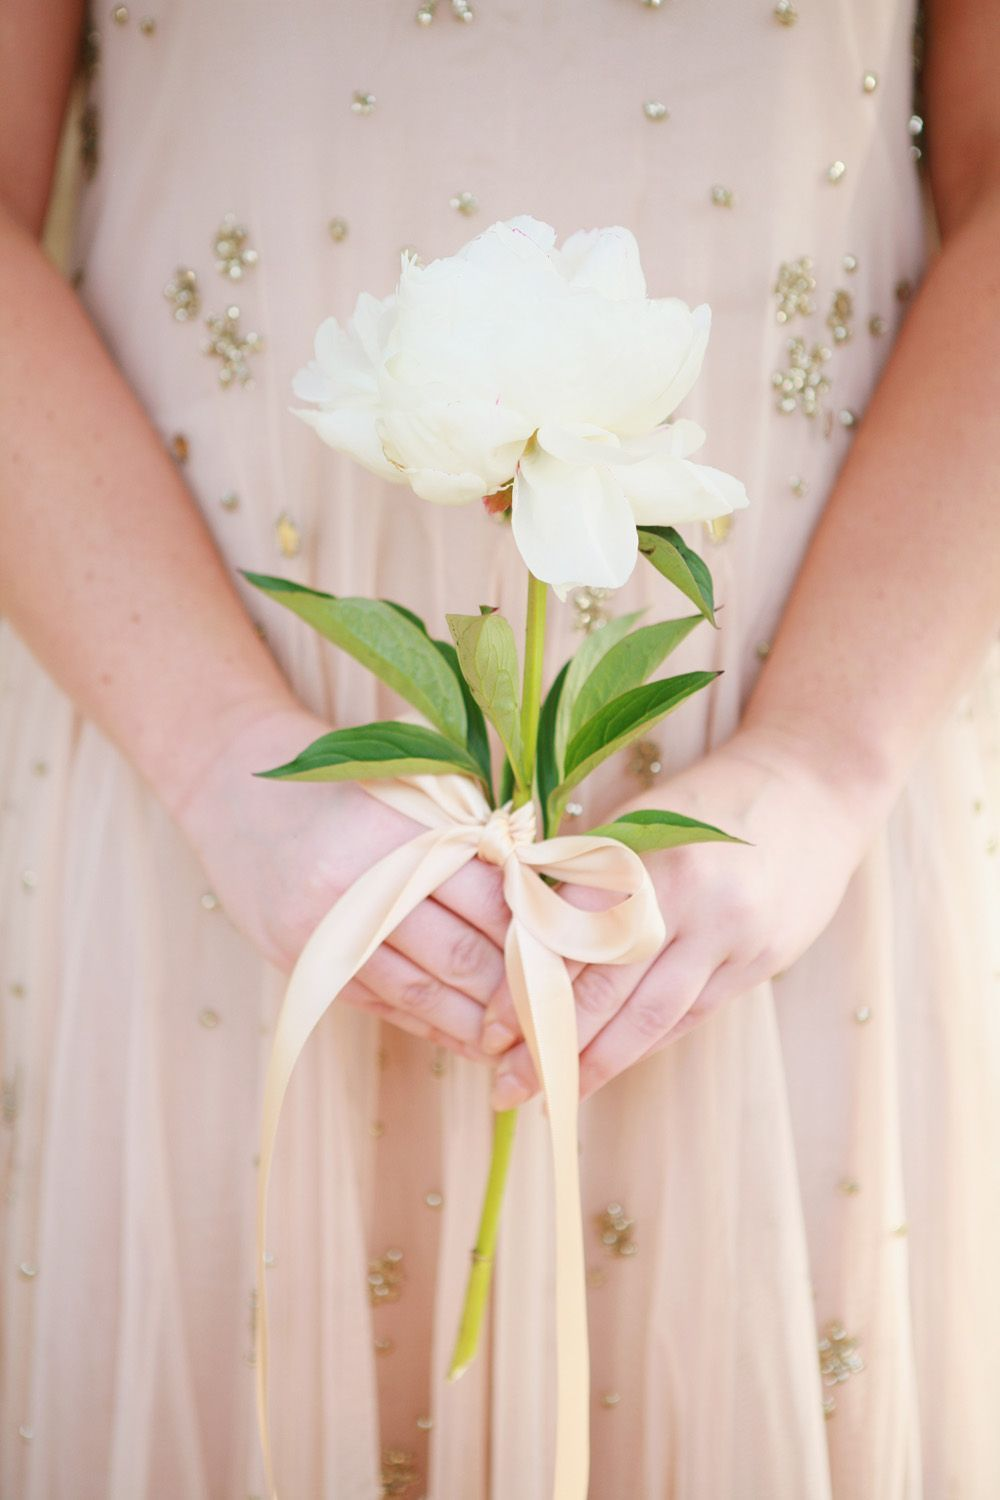 Single Stem Bouquet For Your Wedding Why Not Wedding Themes